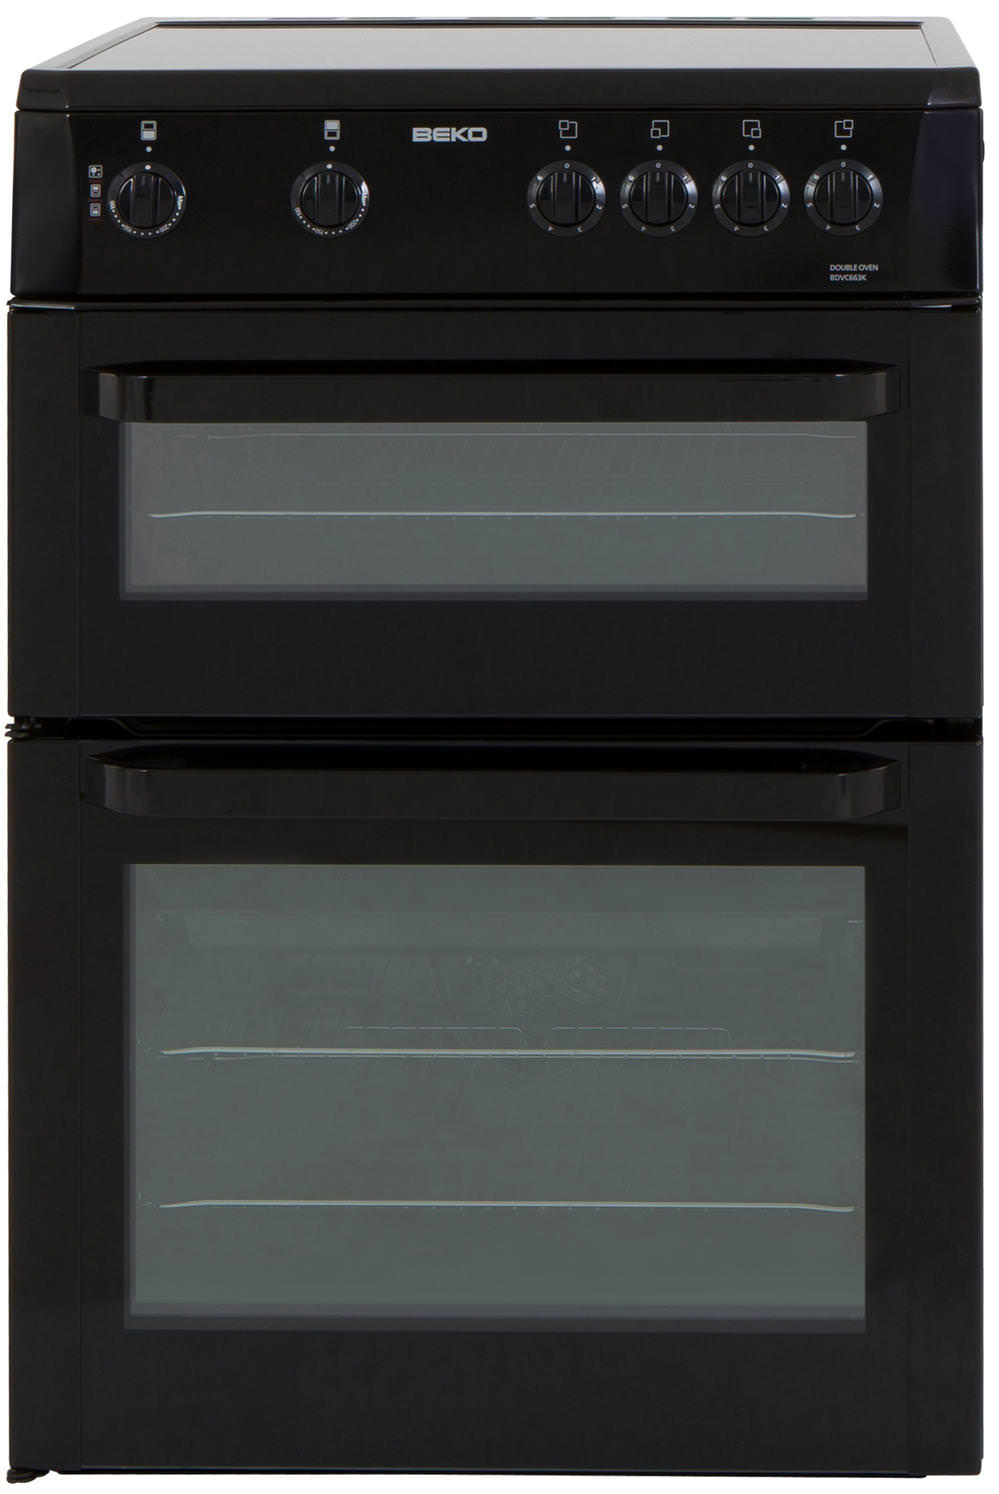 Image of BDVC663K 60cm Electric Double Oven Cooker